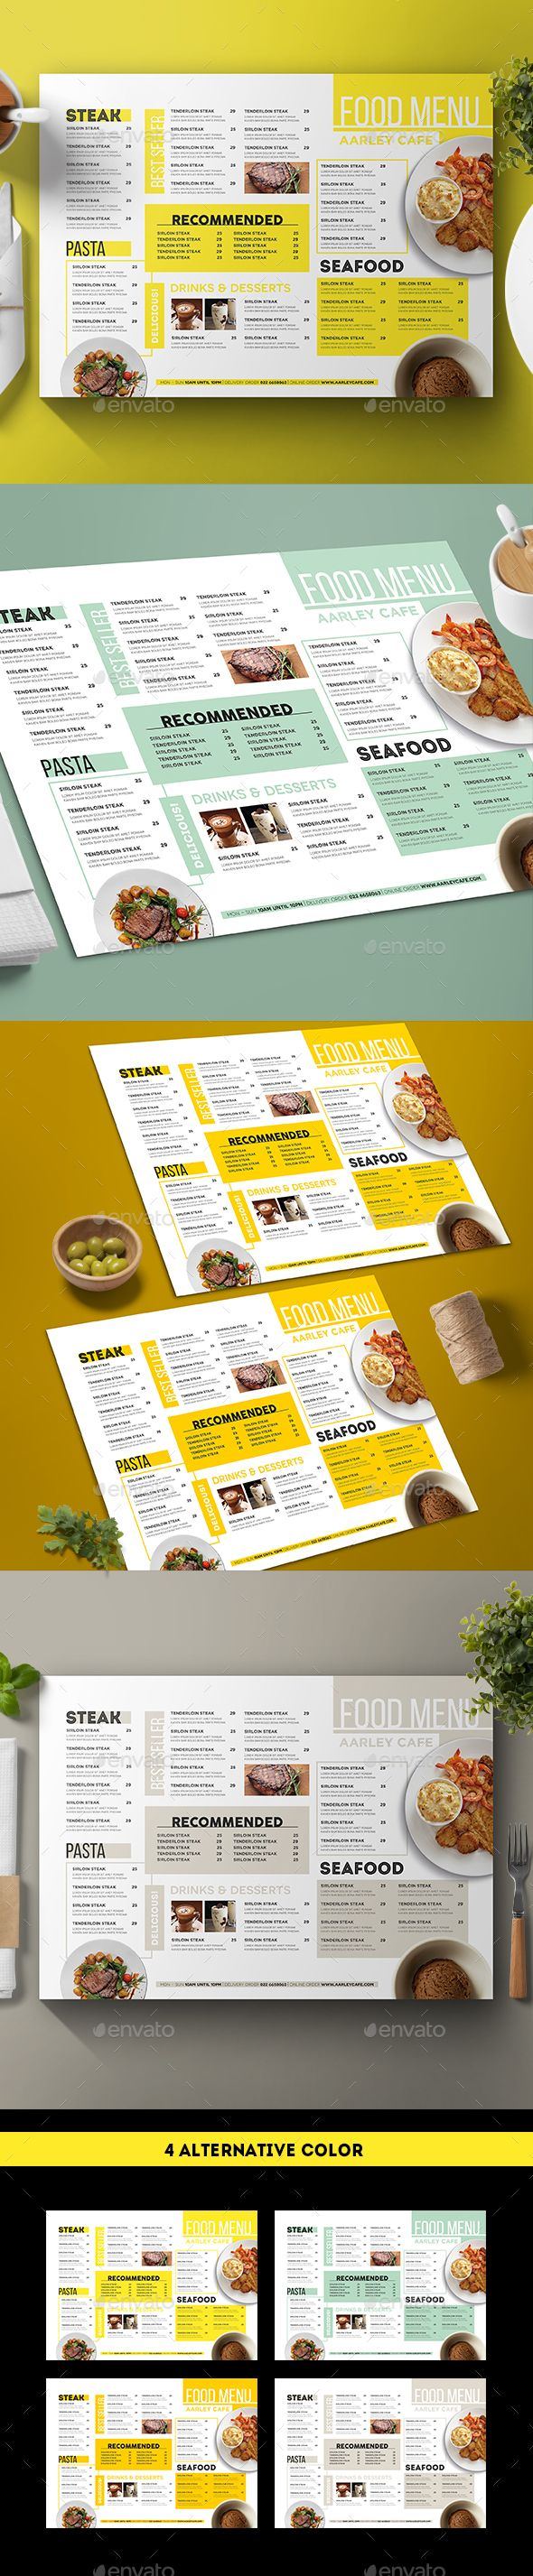 Best 25+ Menu design ideas on Pinterest | Restaurant menu design ...